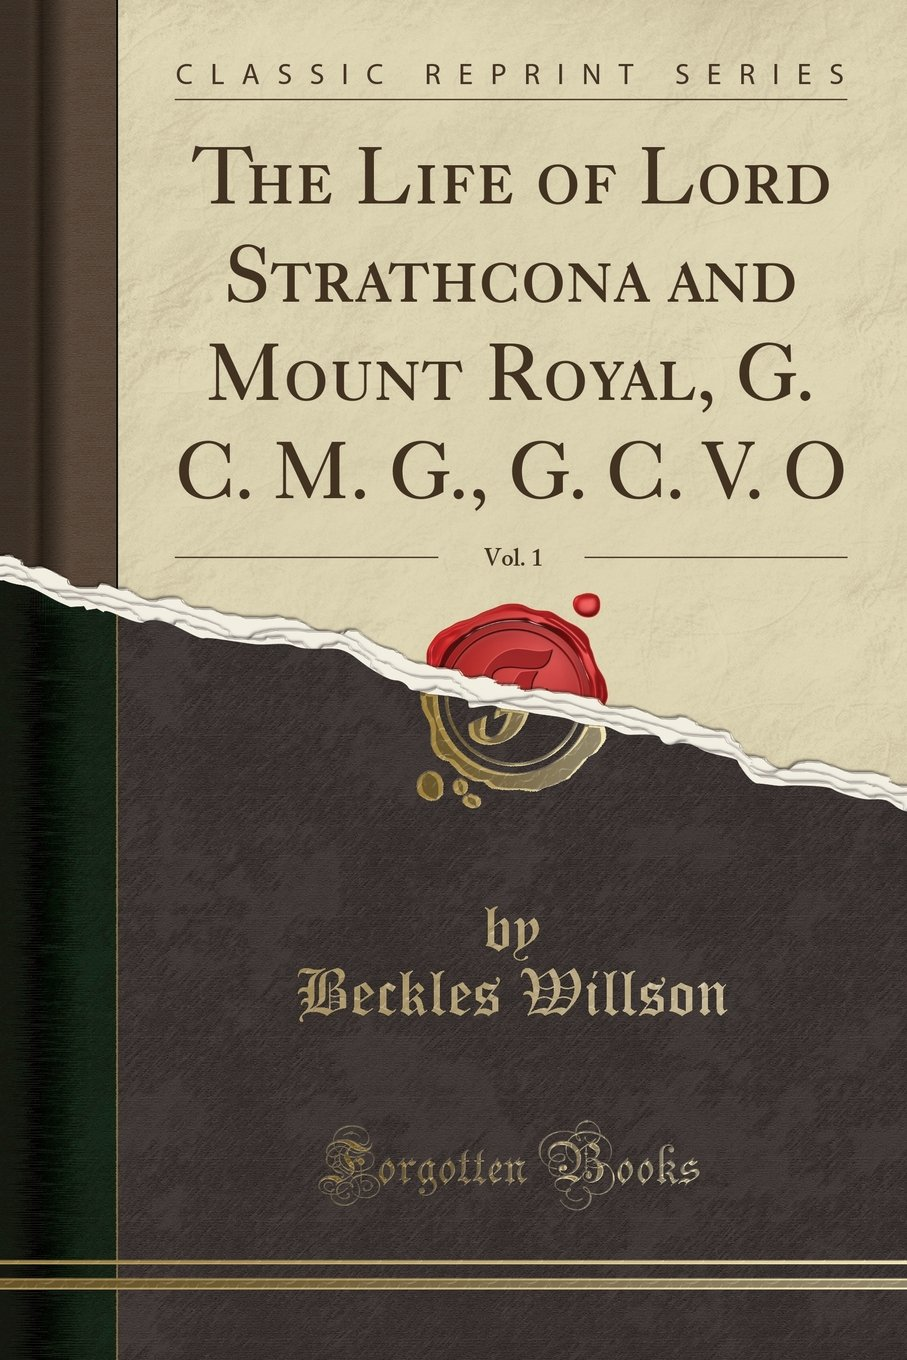 Read Online The Life of Lord Strathcona and Mount Royal, G. C. M. G., G. C. V. O, Vol. 1 (Classic Reprint) pdf epub